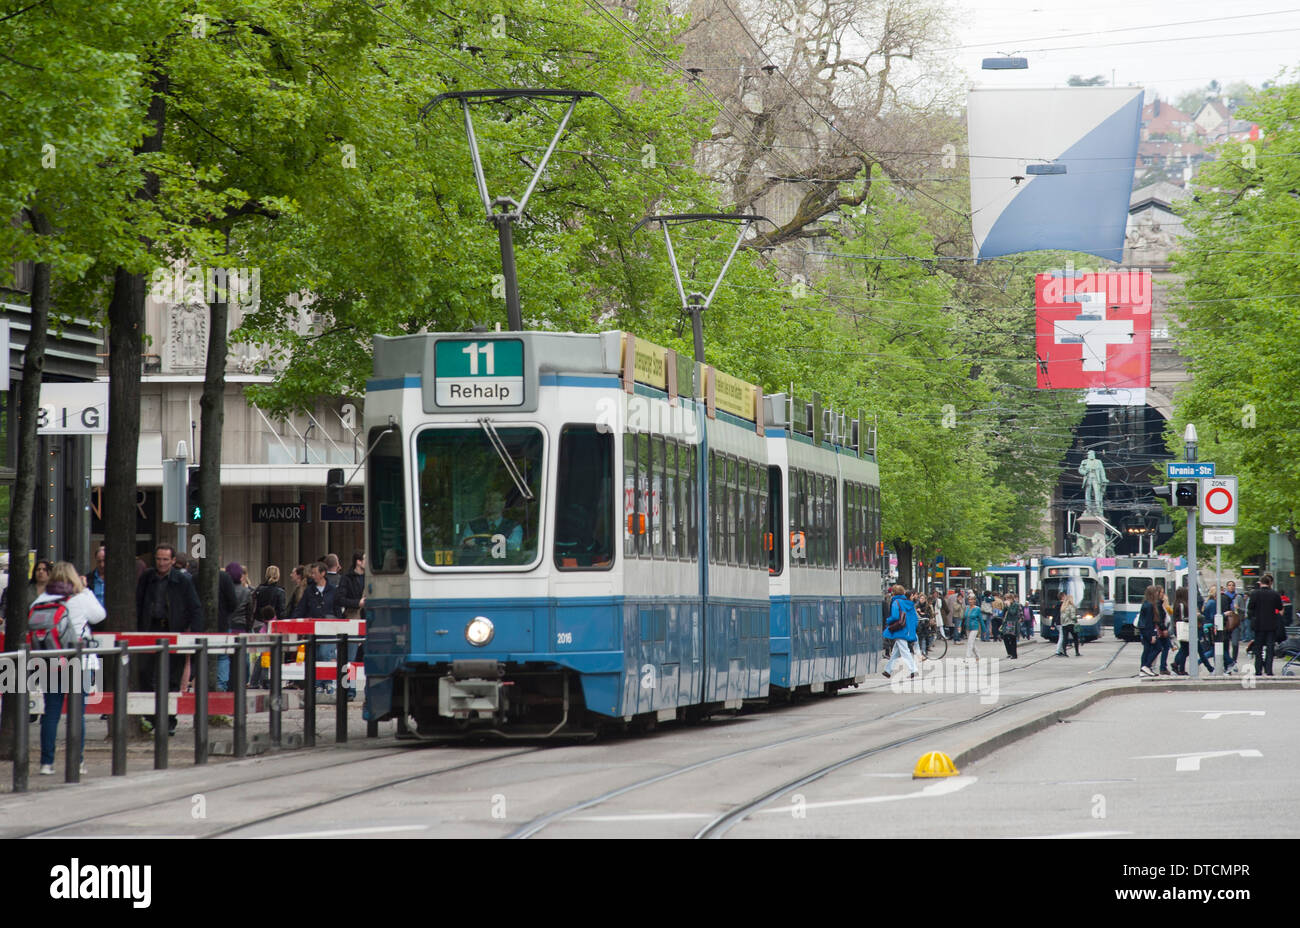 Zurich streetcar (Tram) on Zurich's Bahnhofstrasse luxury commercial strip - Stock Image